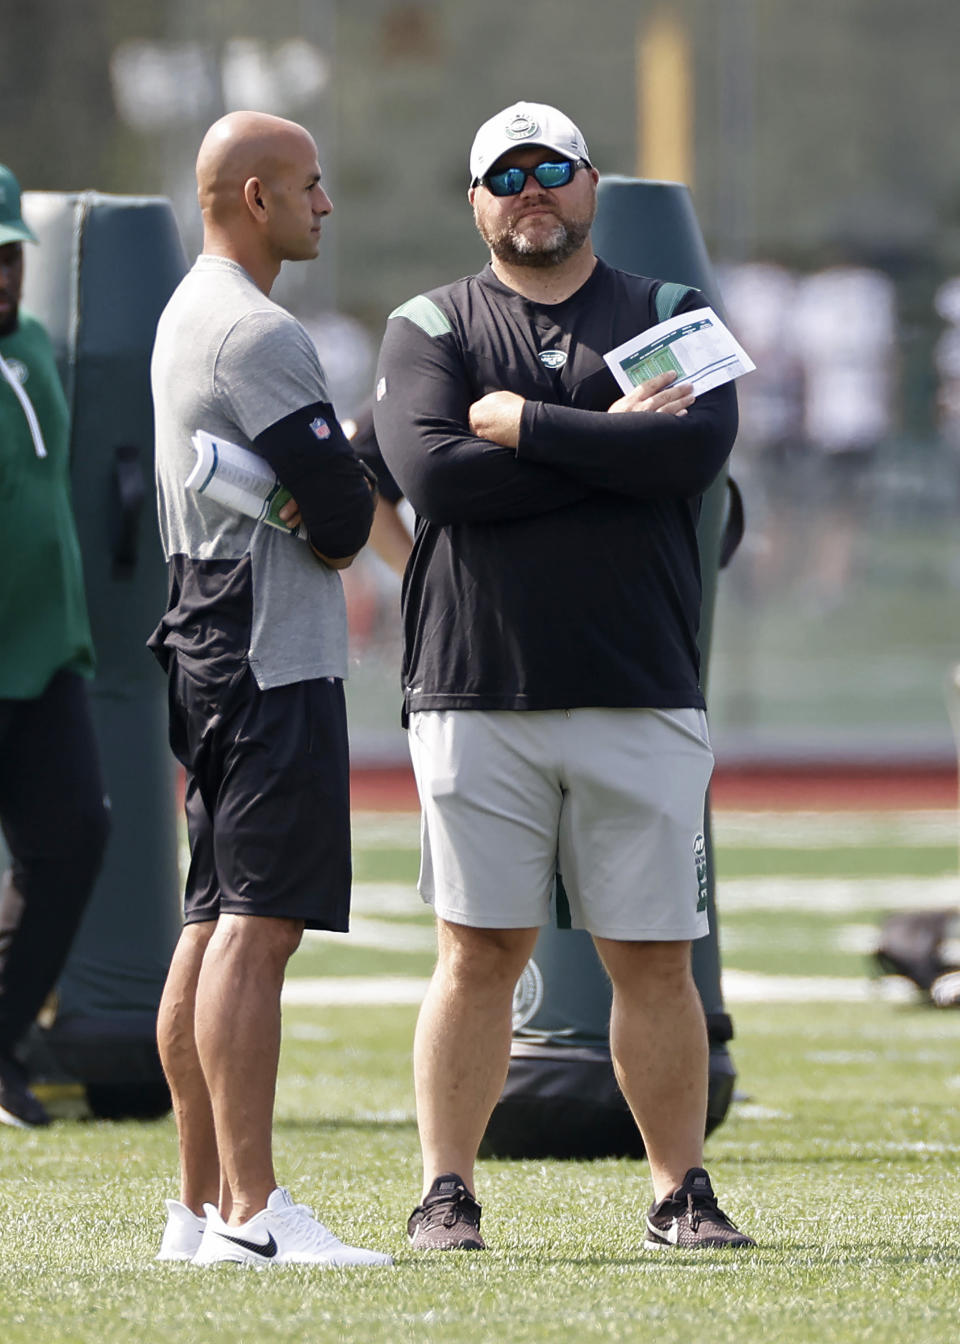 New York Jets general manager Joe Douglas, right, talks with head coach Robert Saleh during NFL football practice Wednesday, July 28, 2021, in Florham Park, N.J. (AP Photo/Adam Hunger)